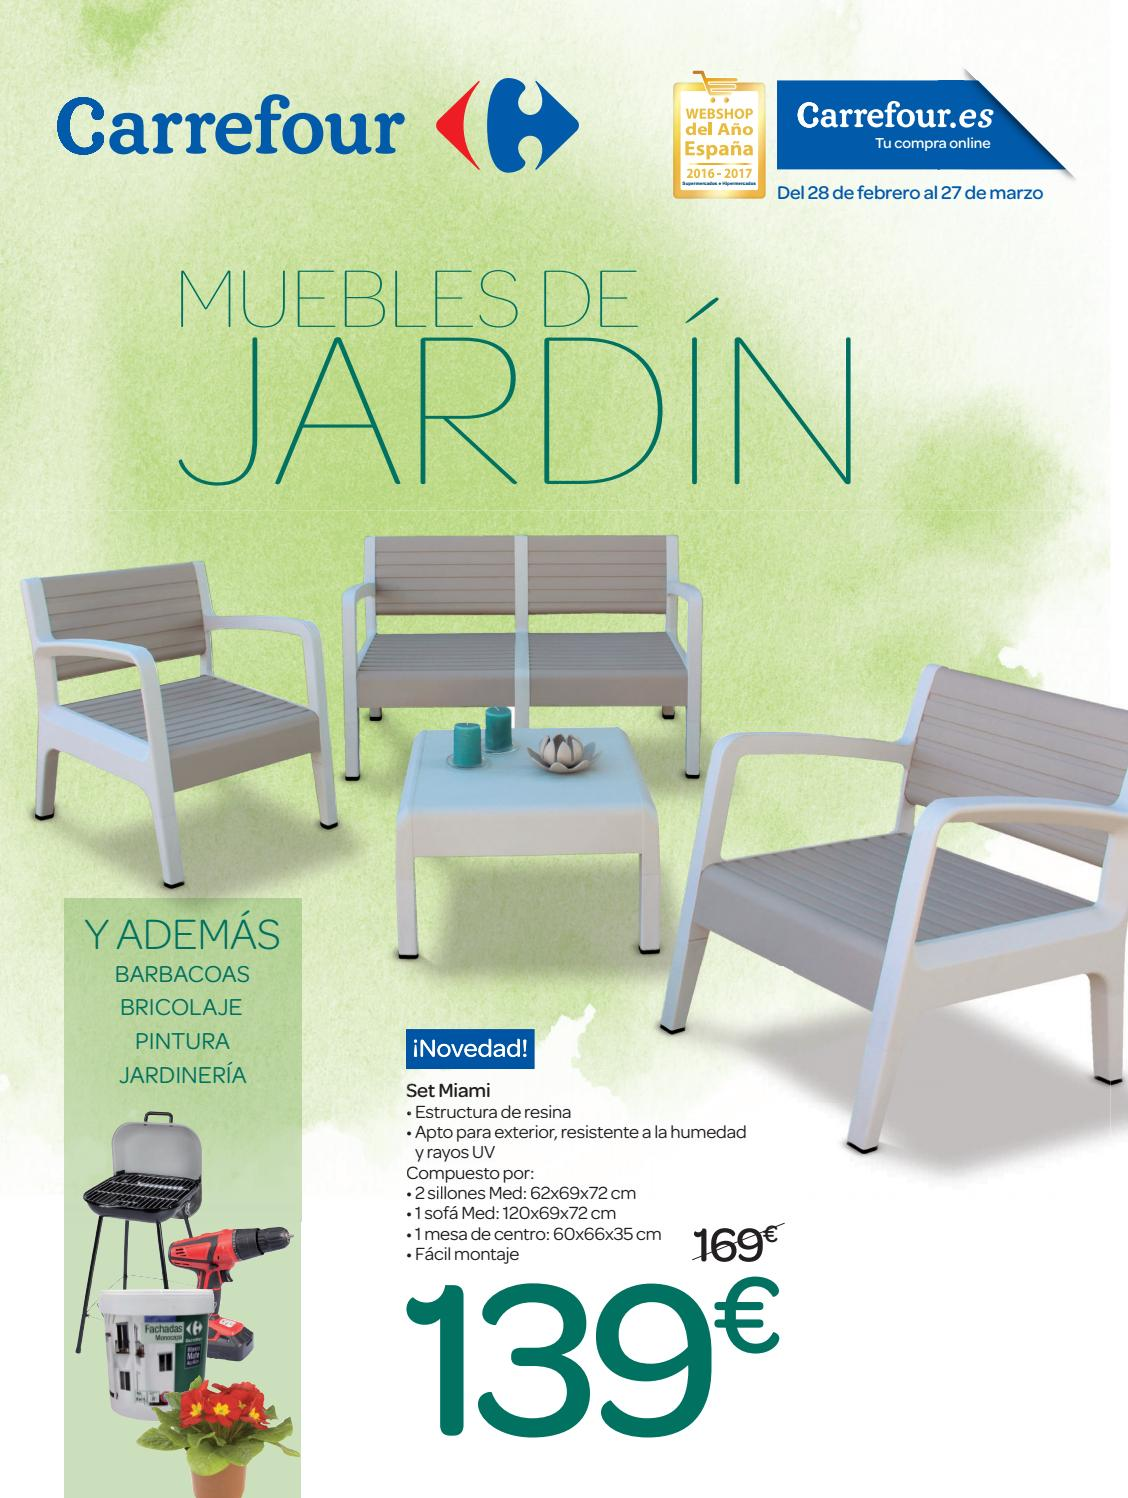 Muebles de jardin carrefour by ofertas supermercados issuu for Muebles jardin carrefour